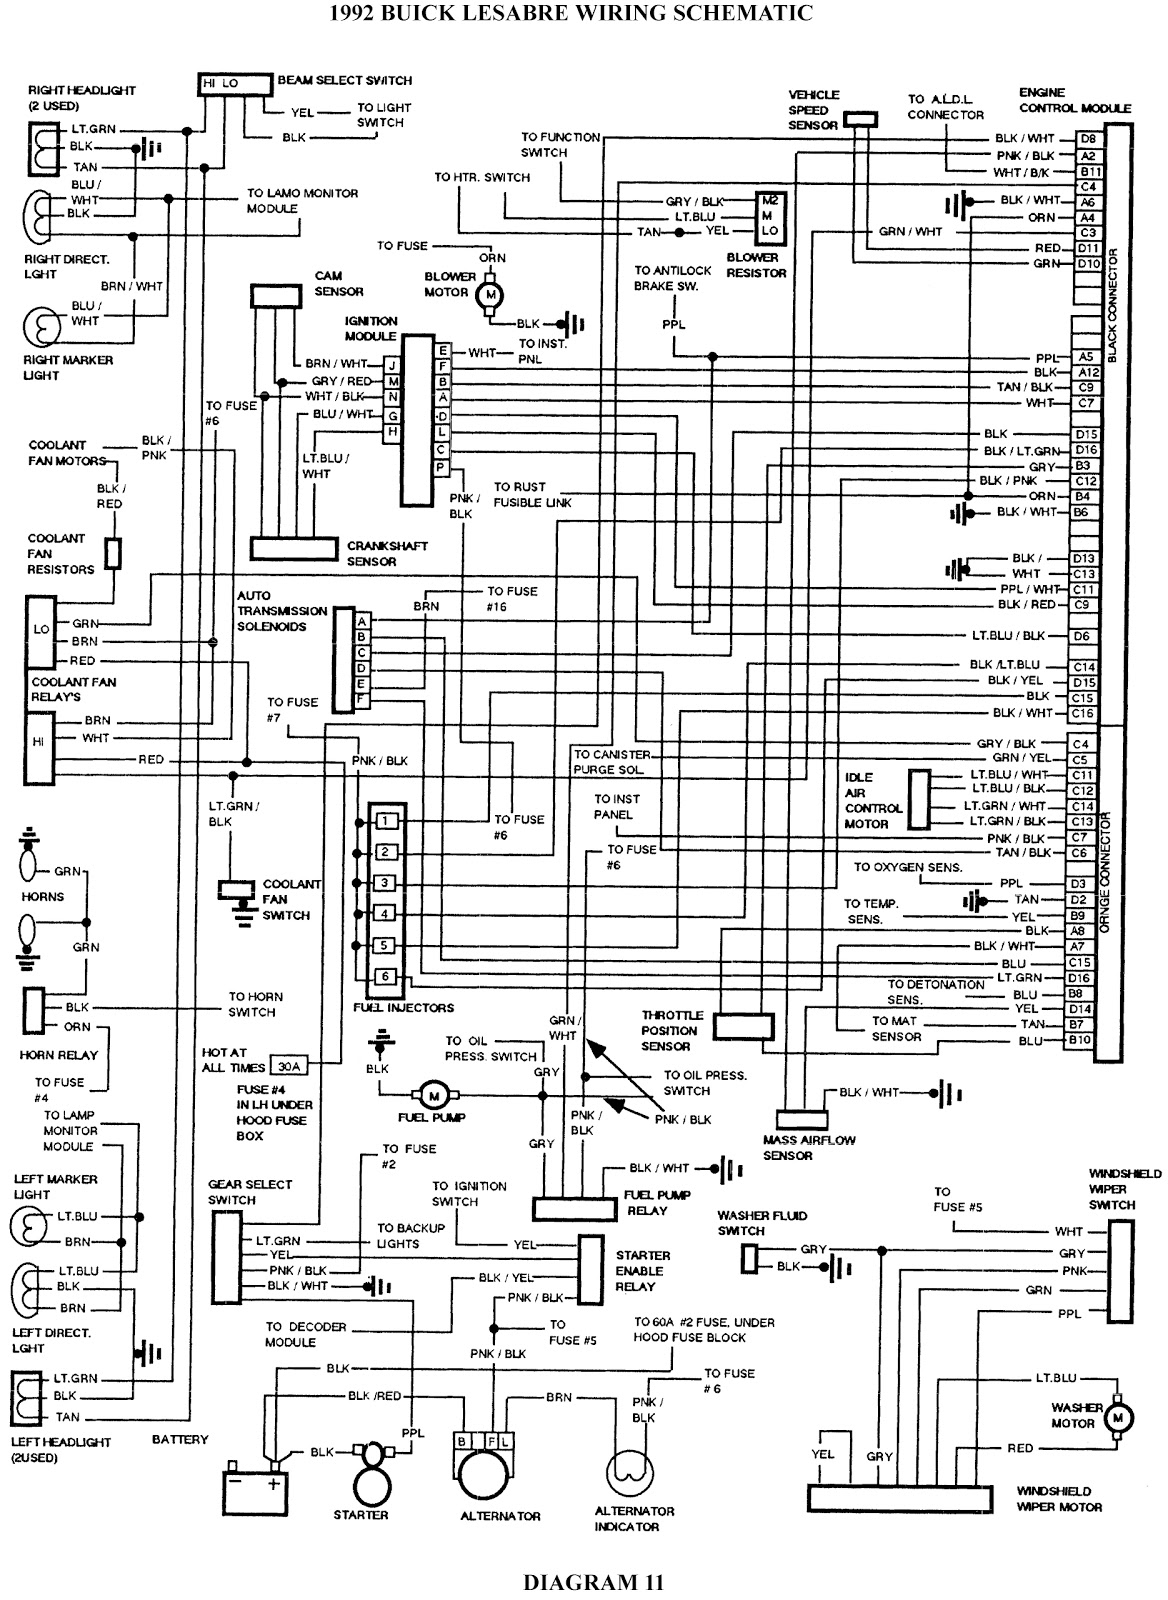 1993 buick roadmaster fuse diagram experts of wiring diagram u2022 rh evilcloud co uk 2002 buick [ 1168 x 1600 Pixel ]